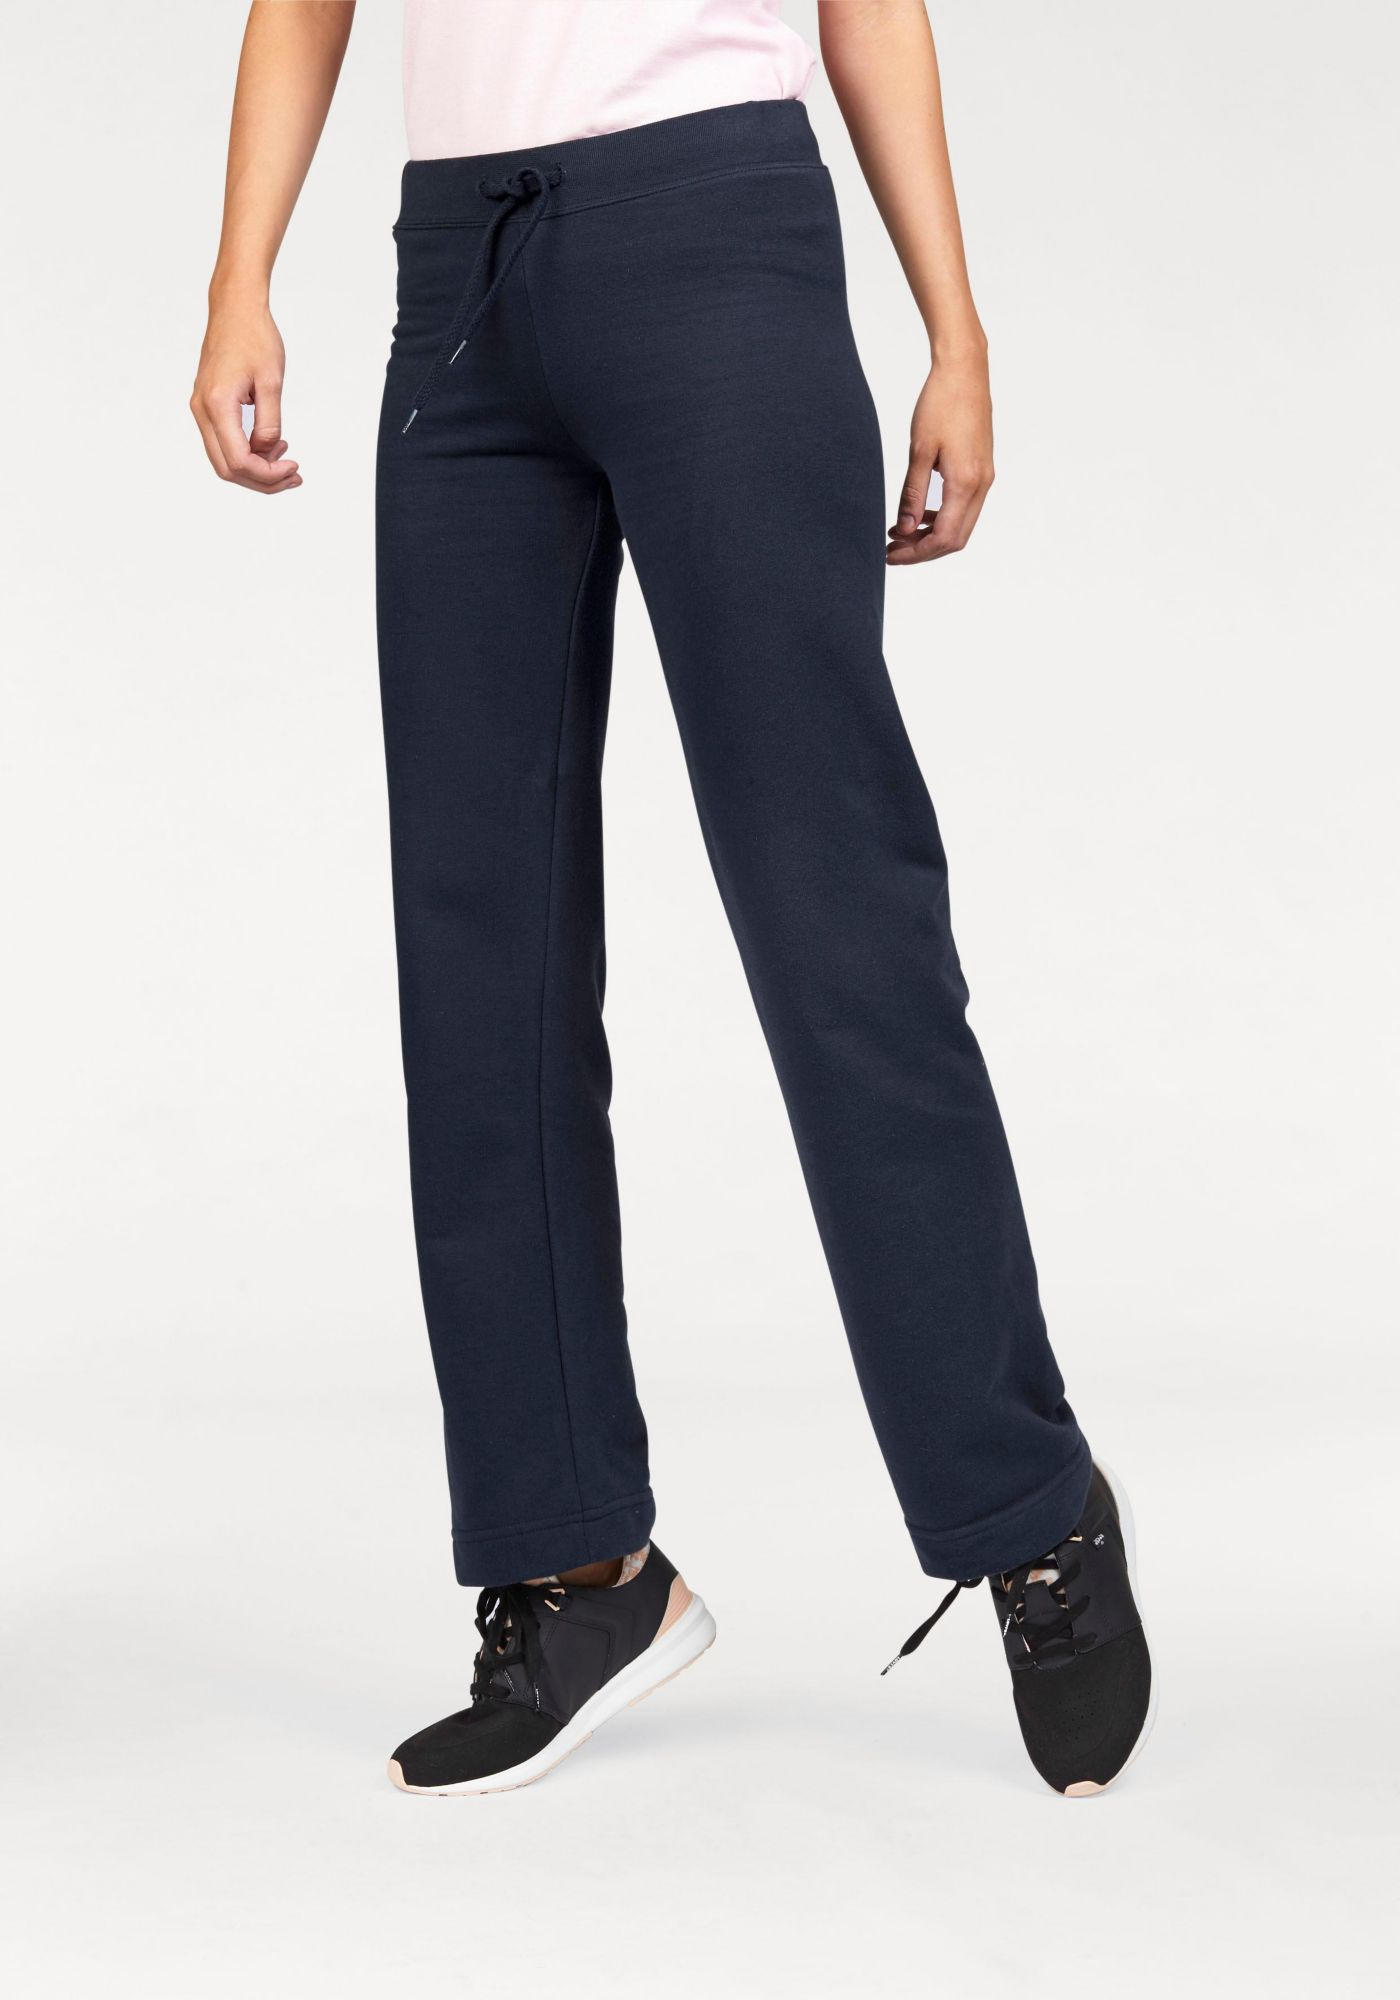 FRUIT OF THE LOOM Fruit of the Loom Jogginghose »Lady-Fit Jog Pants mit offenem Beinabschluss«